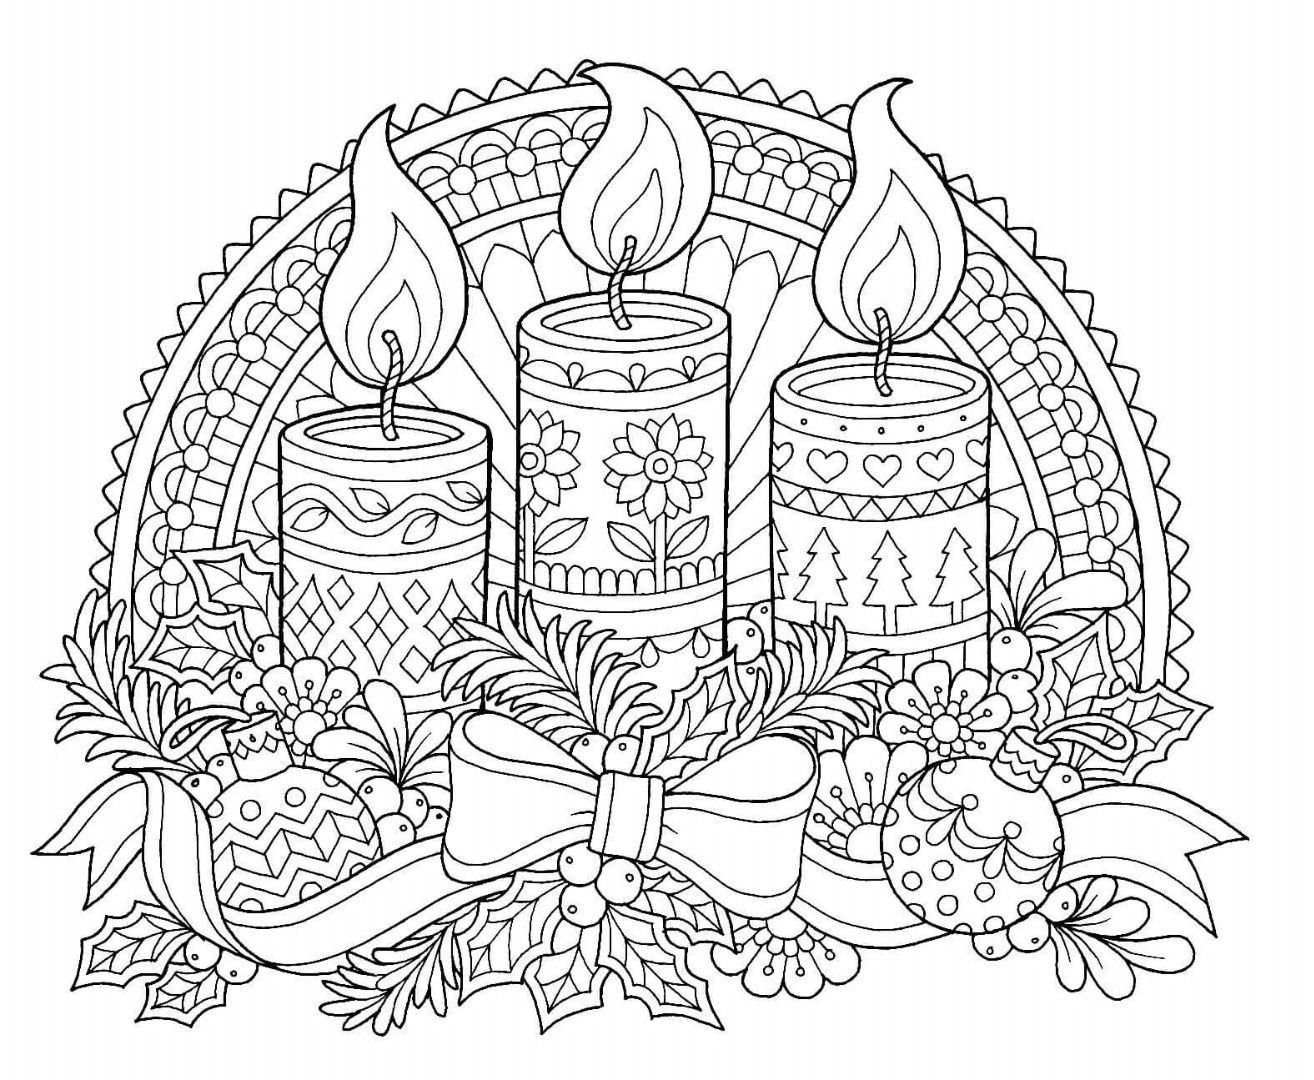 pin by christine on colouring for adults christmas coloring sheets free printable adult coloring pages Christmas Coloring Page Adult